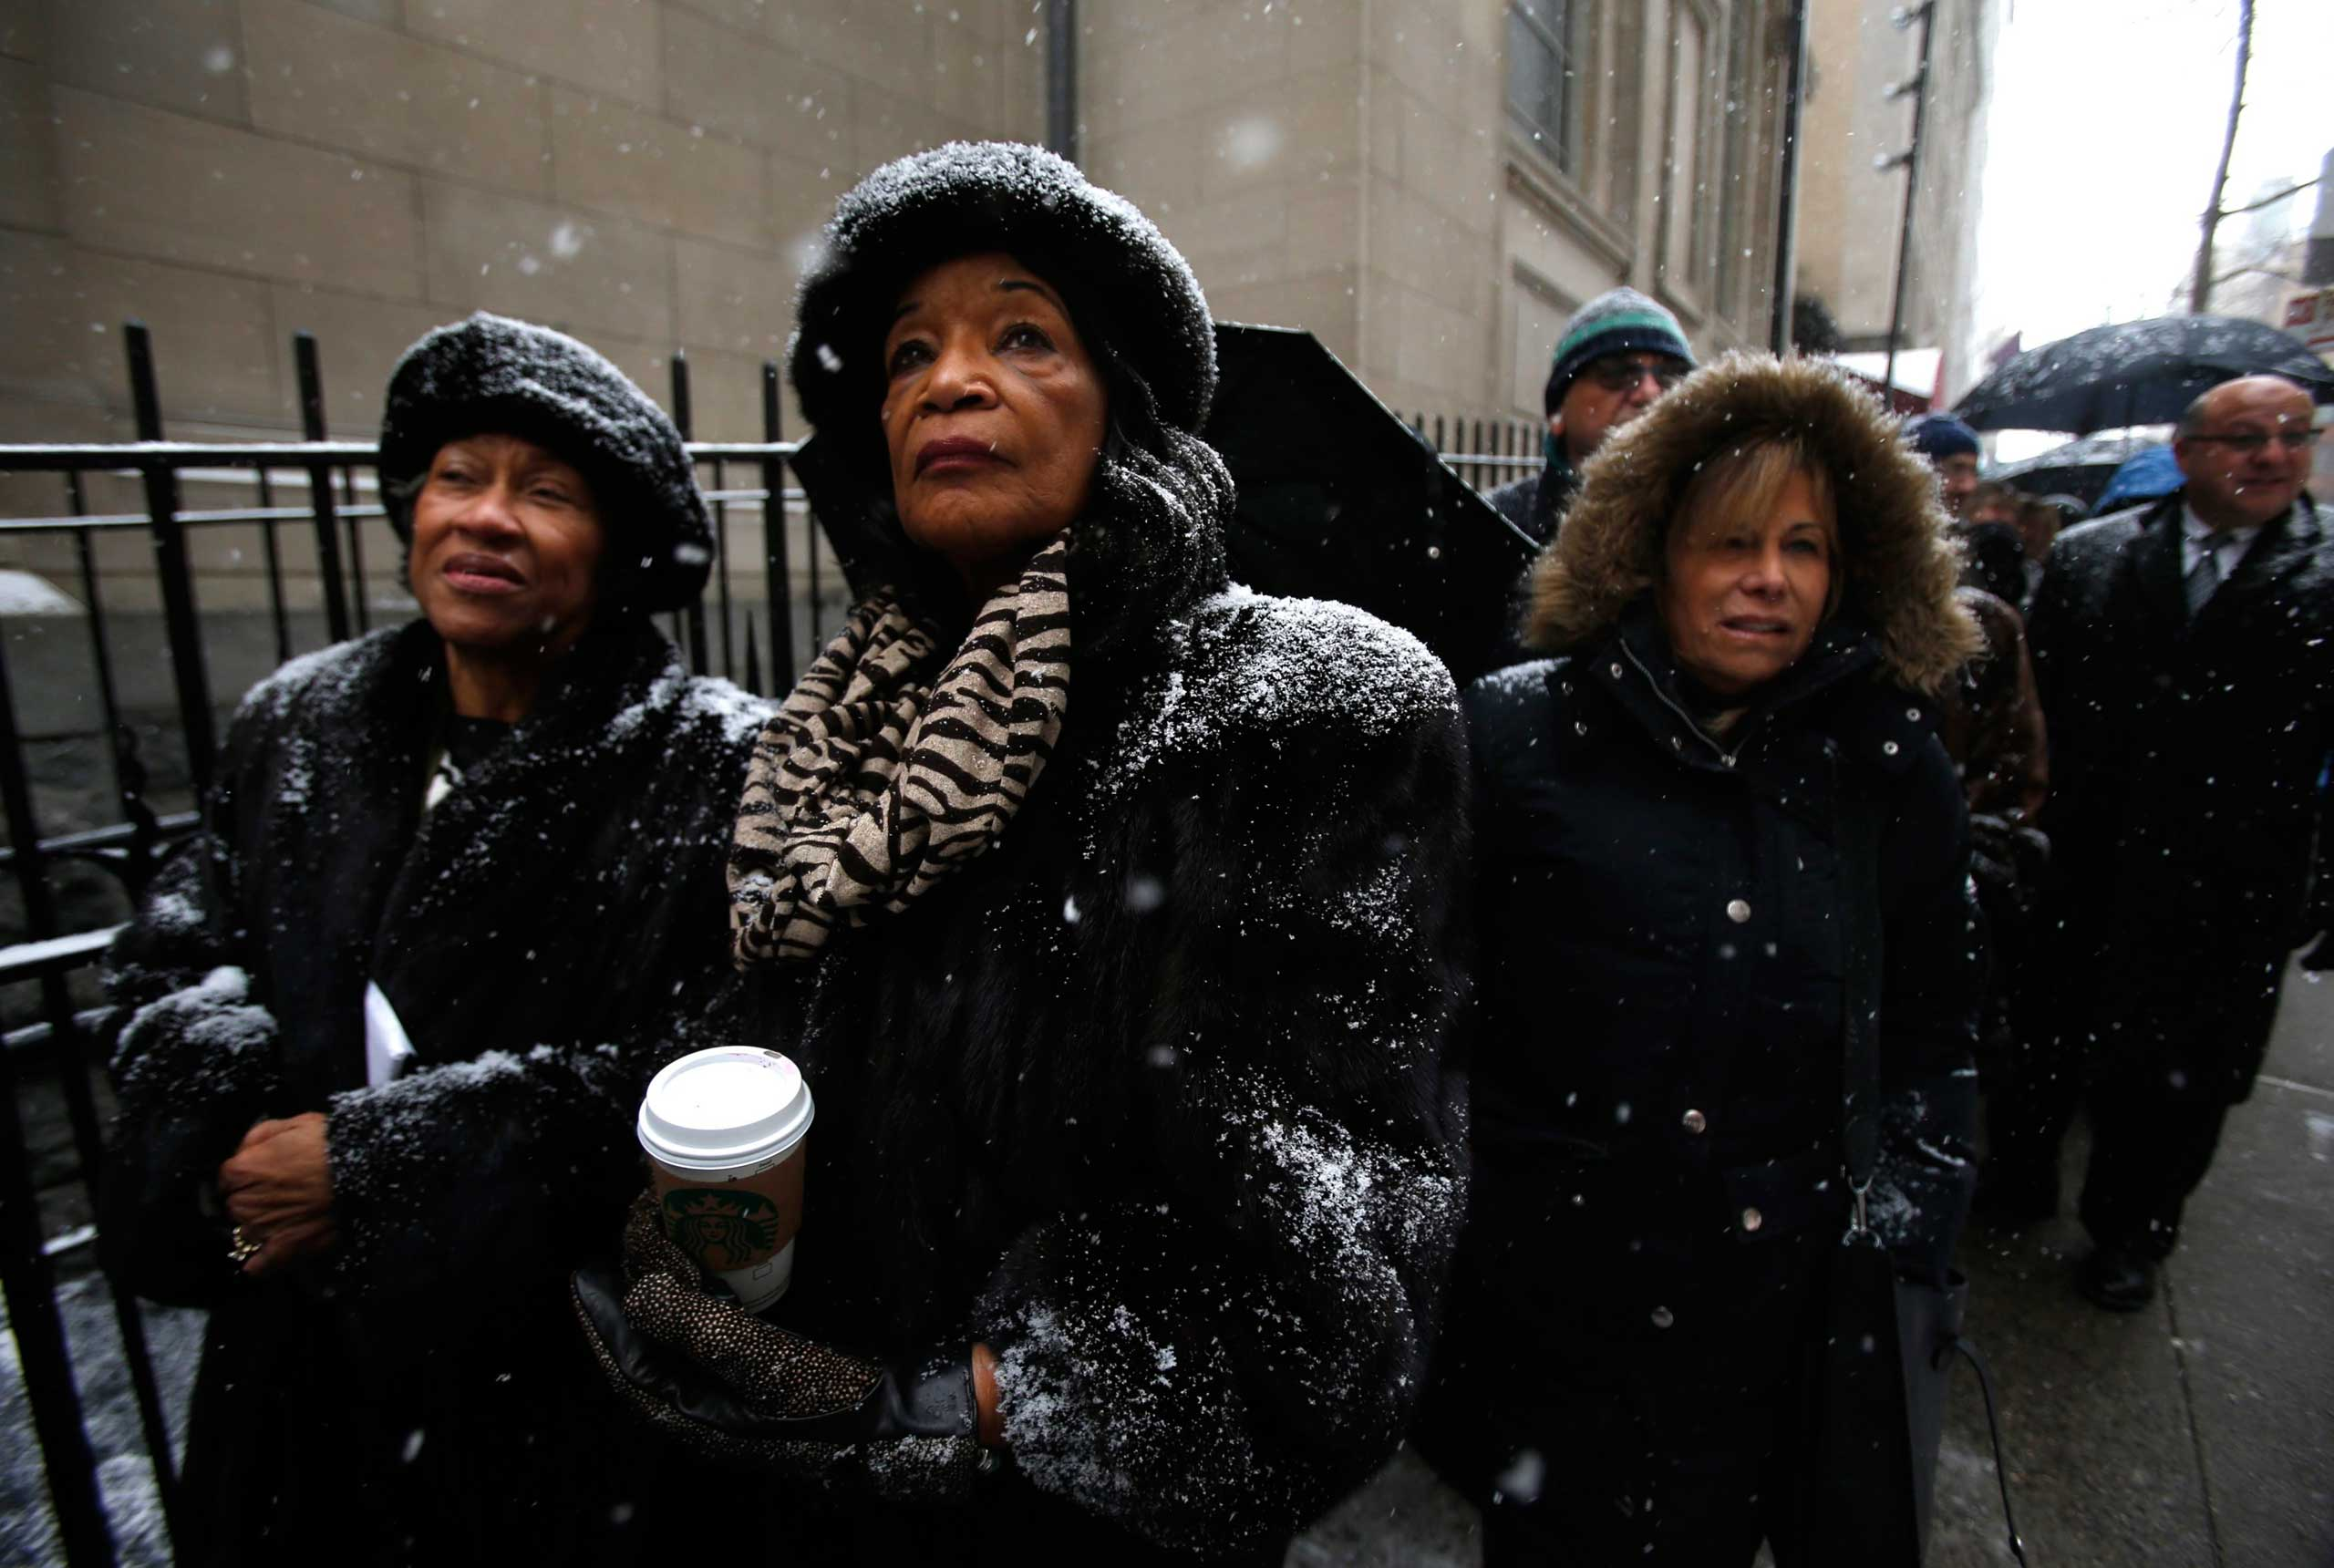 Mourners wait in line in the snow to enter St. Ignatius Loyola Church before the funeral service for former New York Governor Mario Cuomo in New York on Jan. 6, 2015.